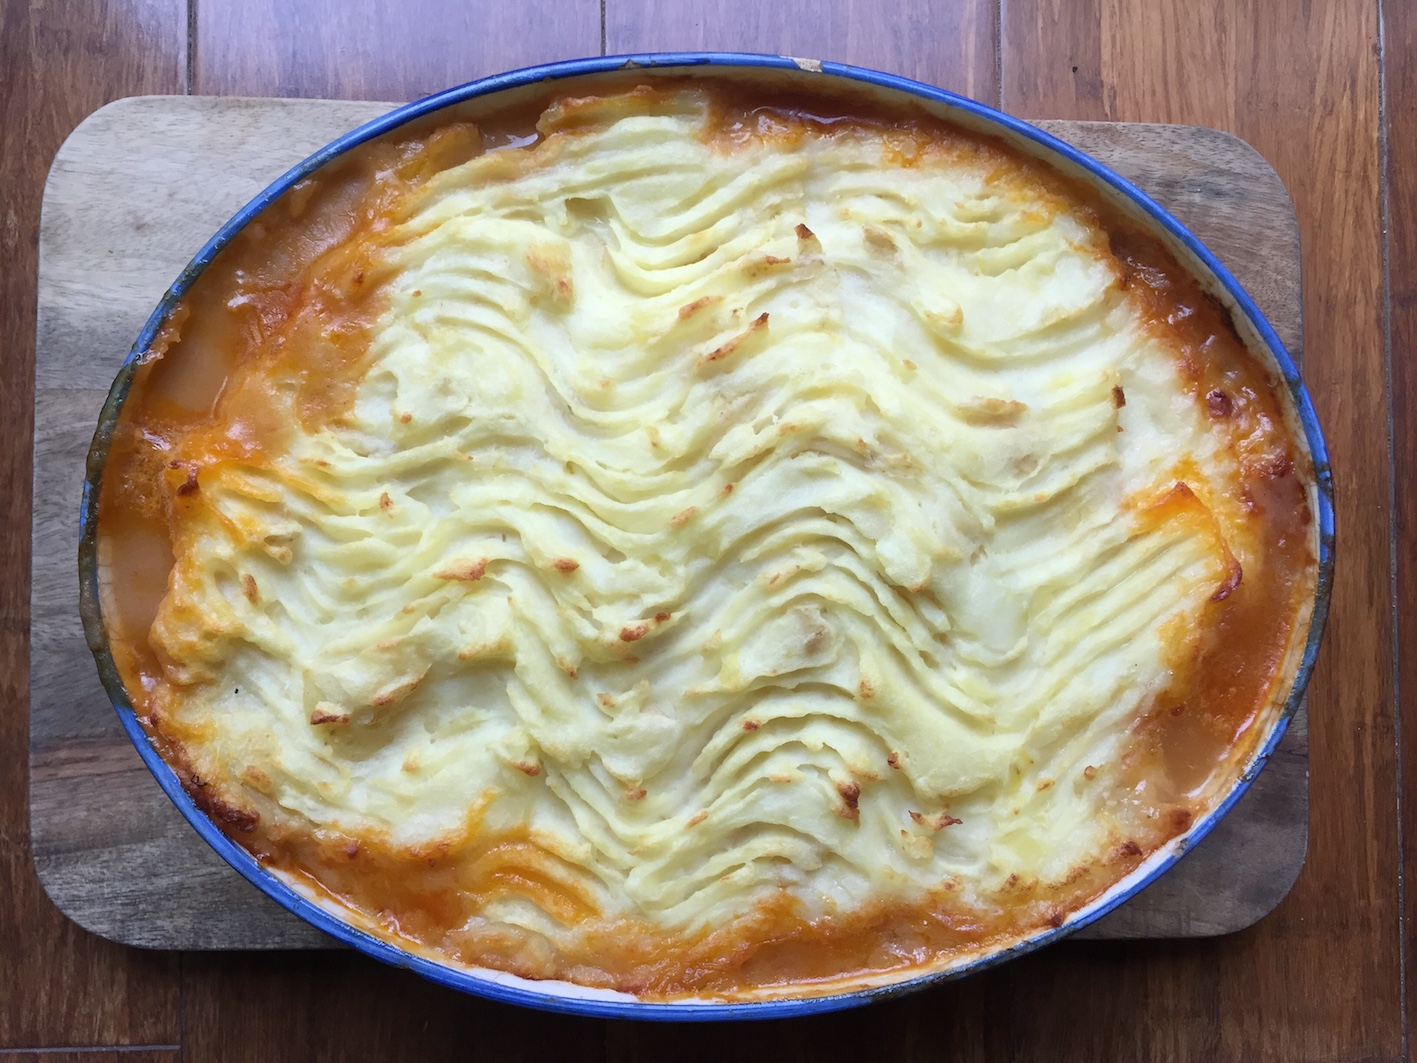 Fresh out of the oven, a delicious slow cooked shepherd's pie.